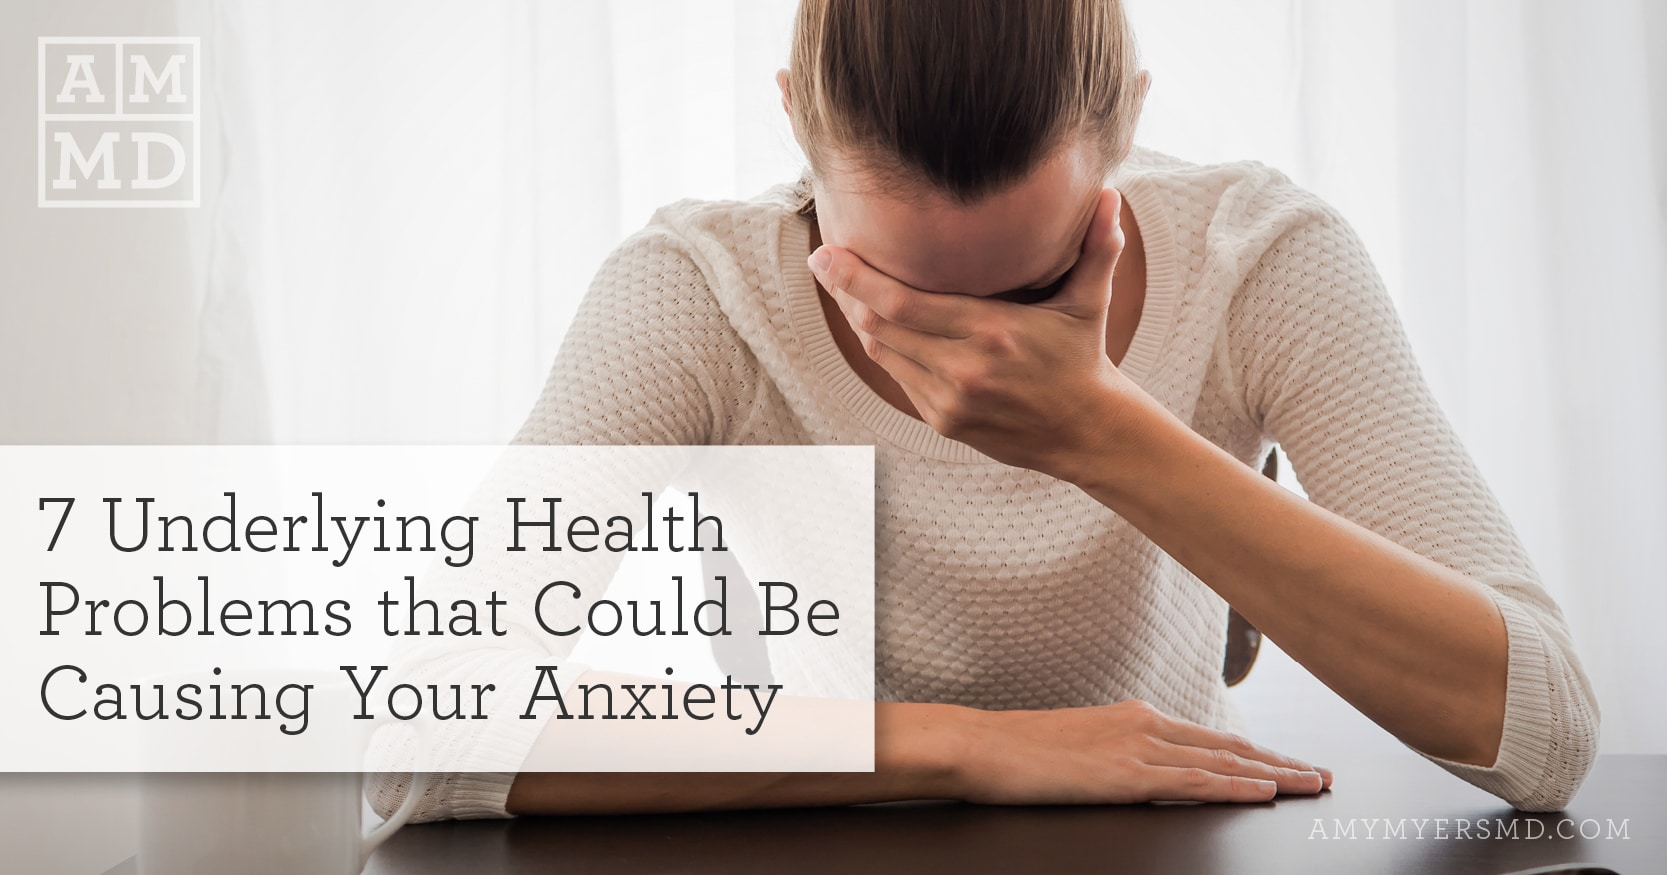 Underlying Health Problems that Could Be Causing Your Anxiety - Amy Myers MD